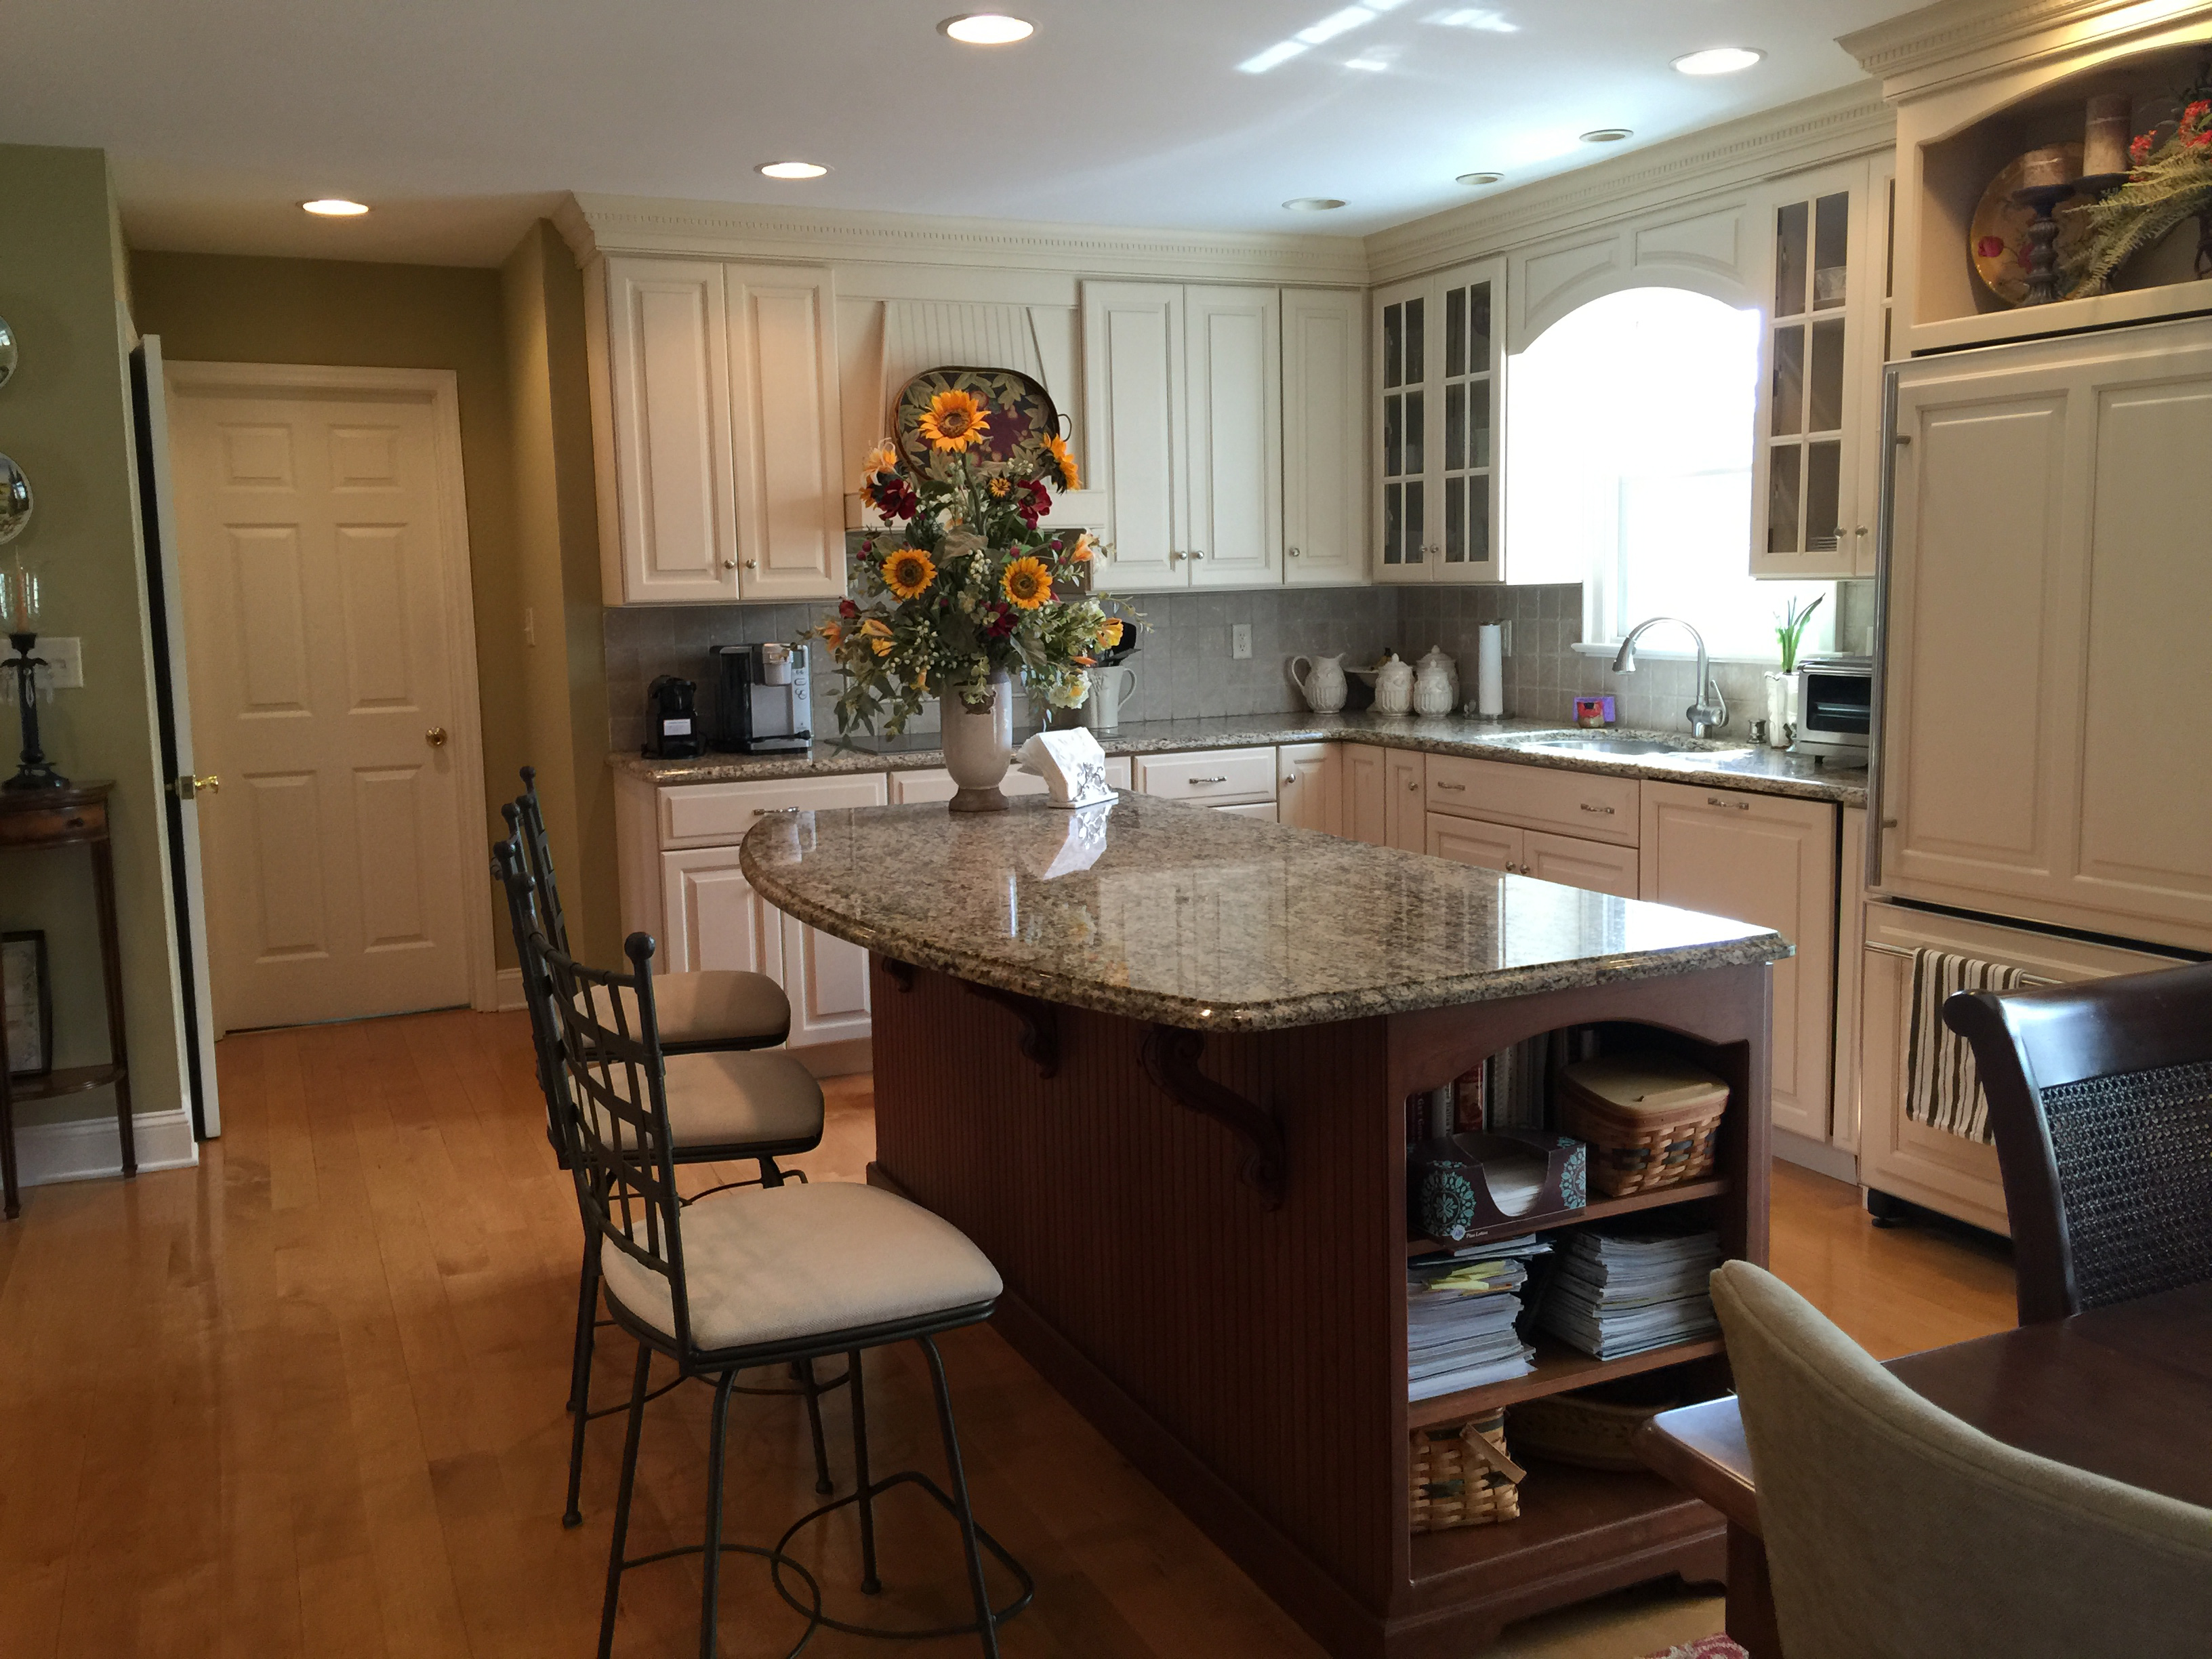 granite virginia news home has newport hicks services countertops kitchen island cabinets remodeled yorktown tile tiled improvement new in countertop remodels with custom com jimhicks jim backsplash